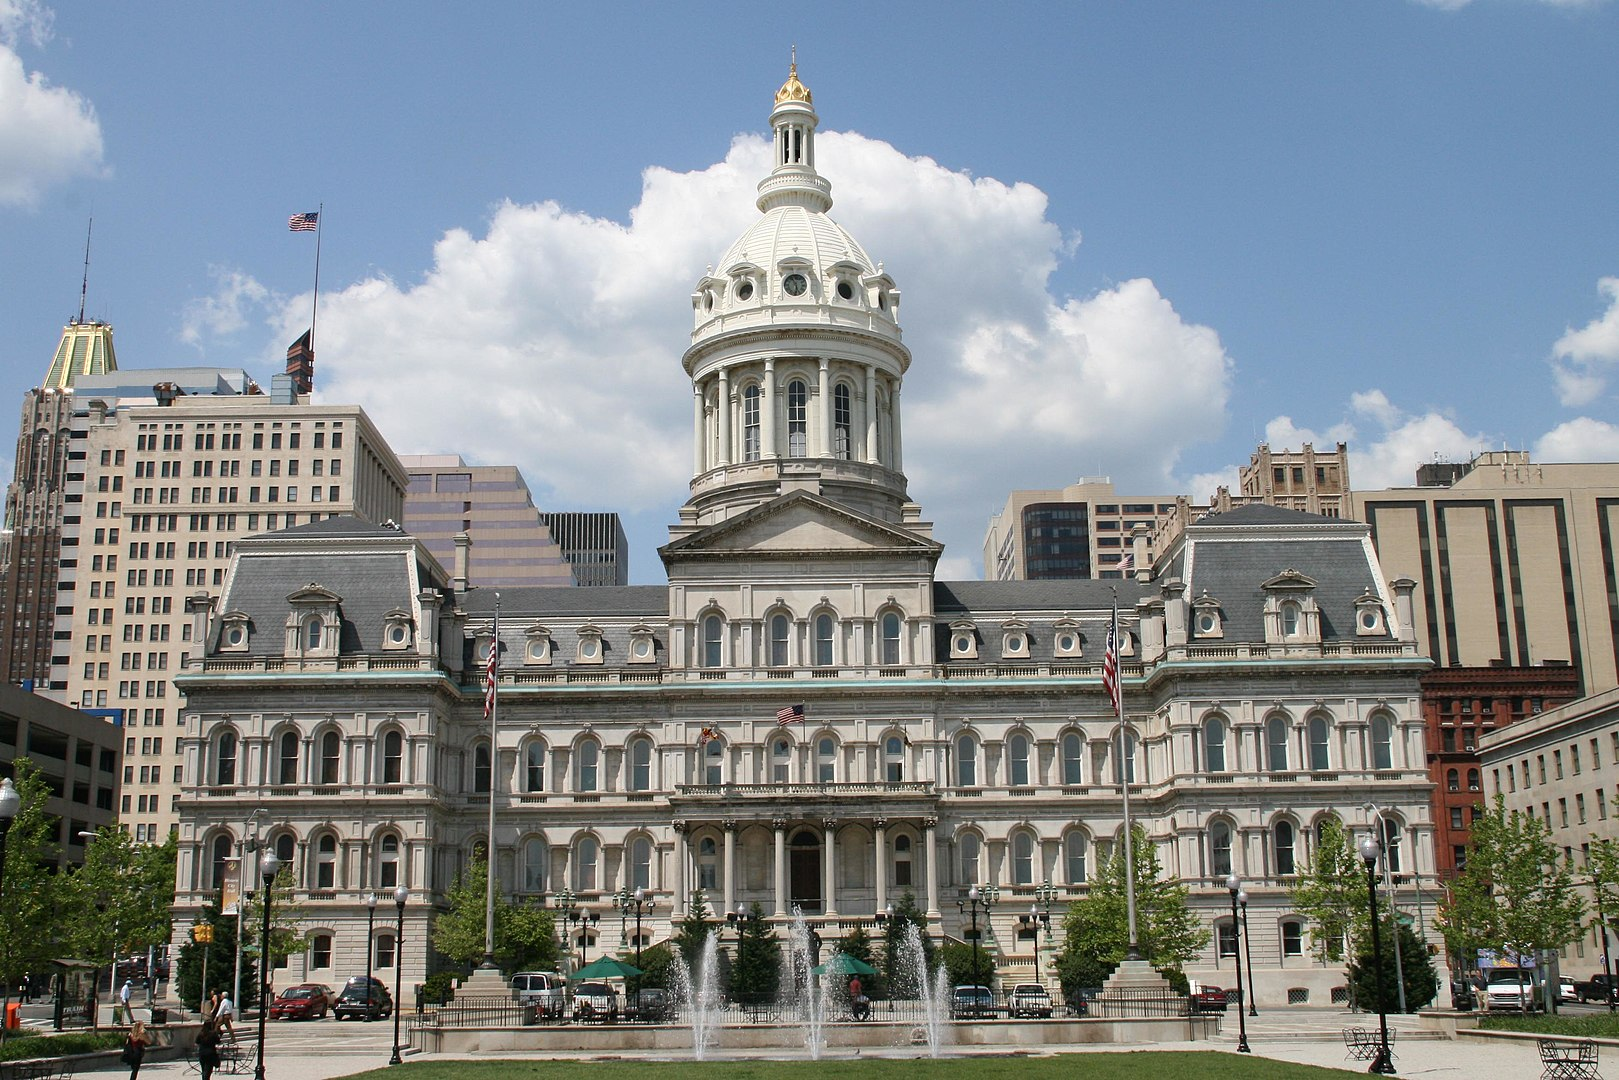 This is an image of Baltimore City Hall